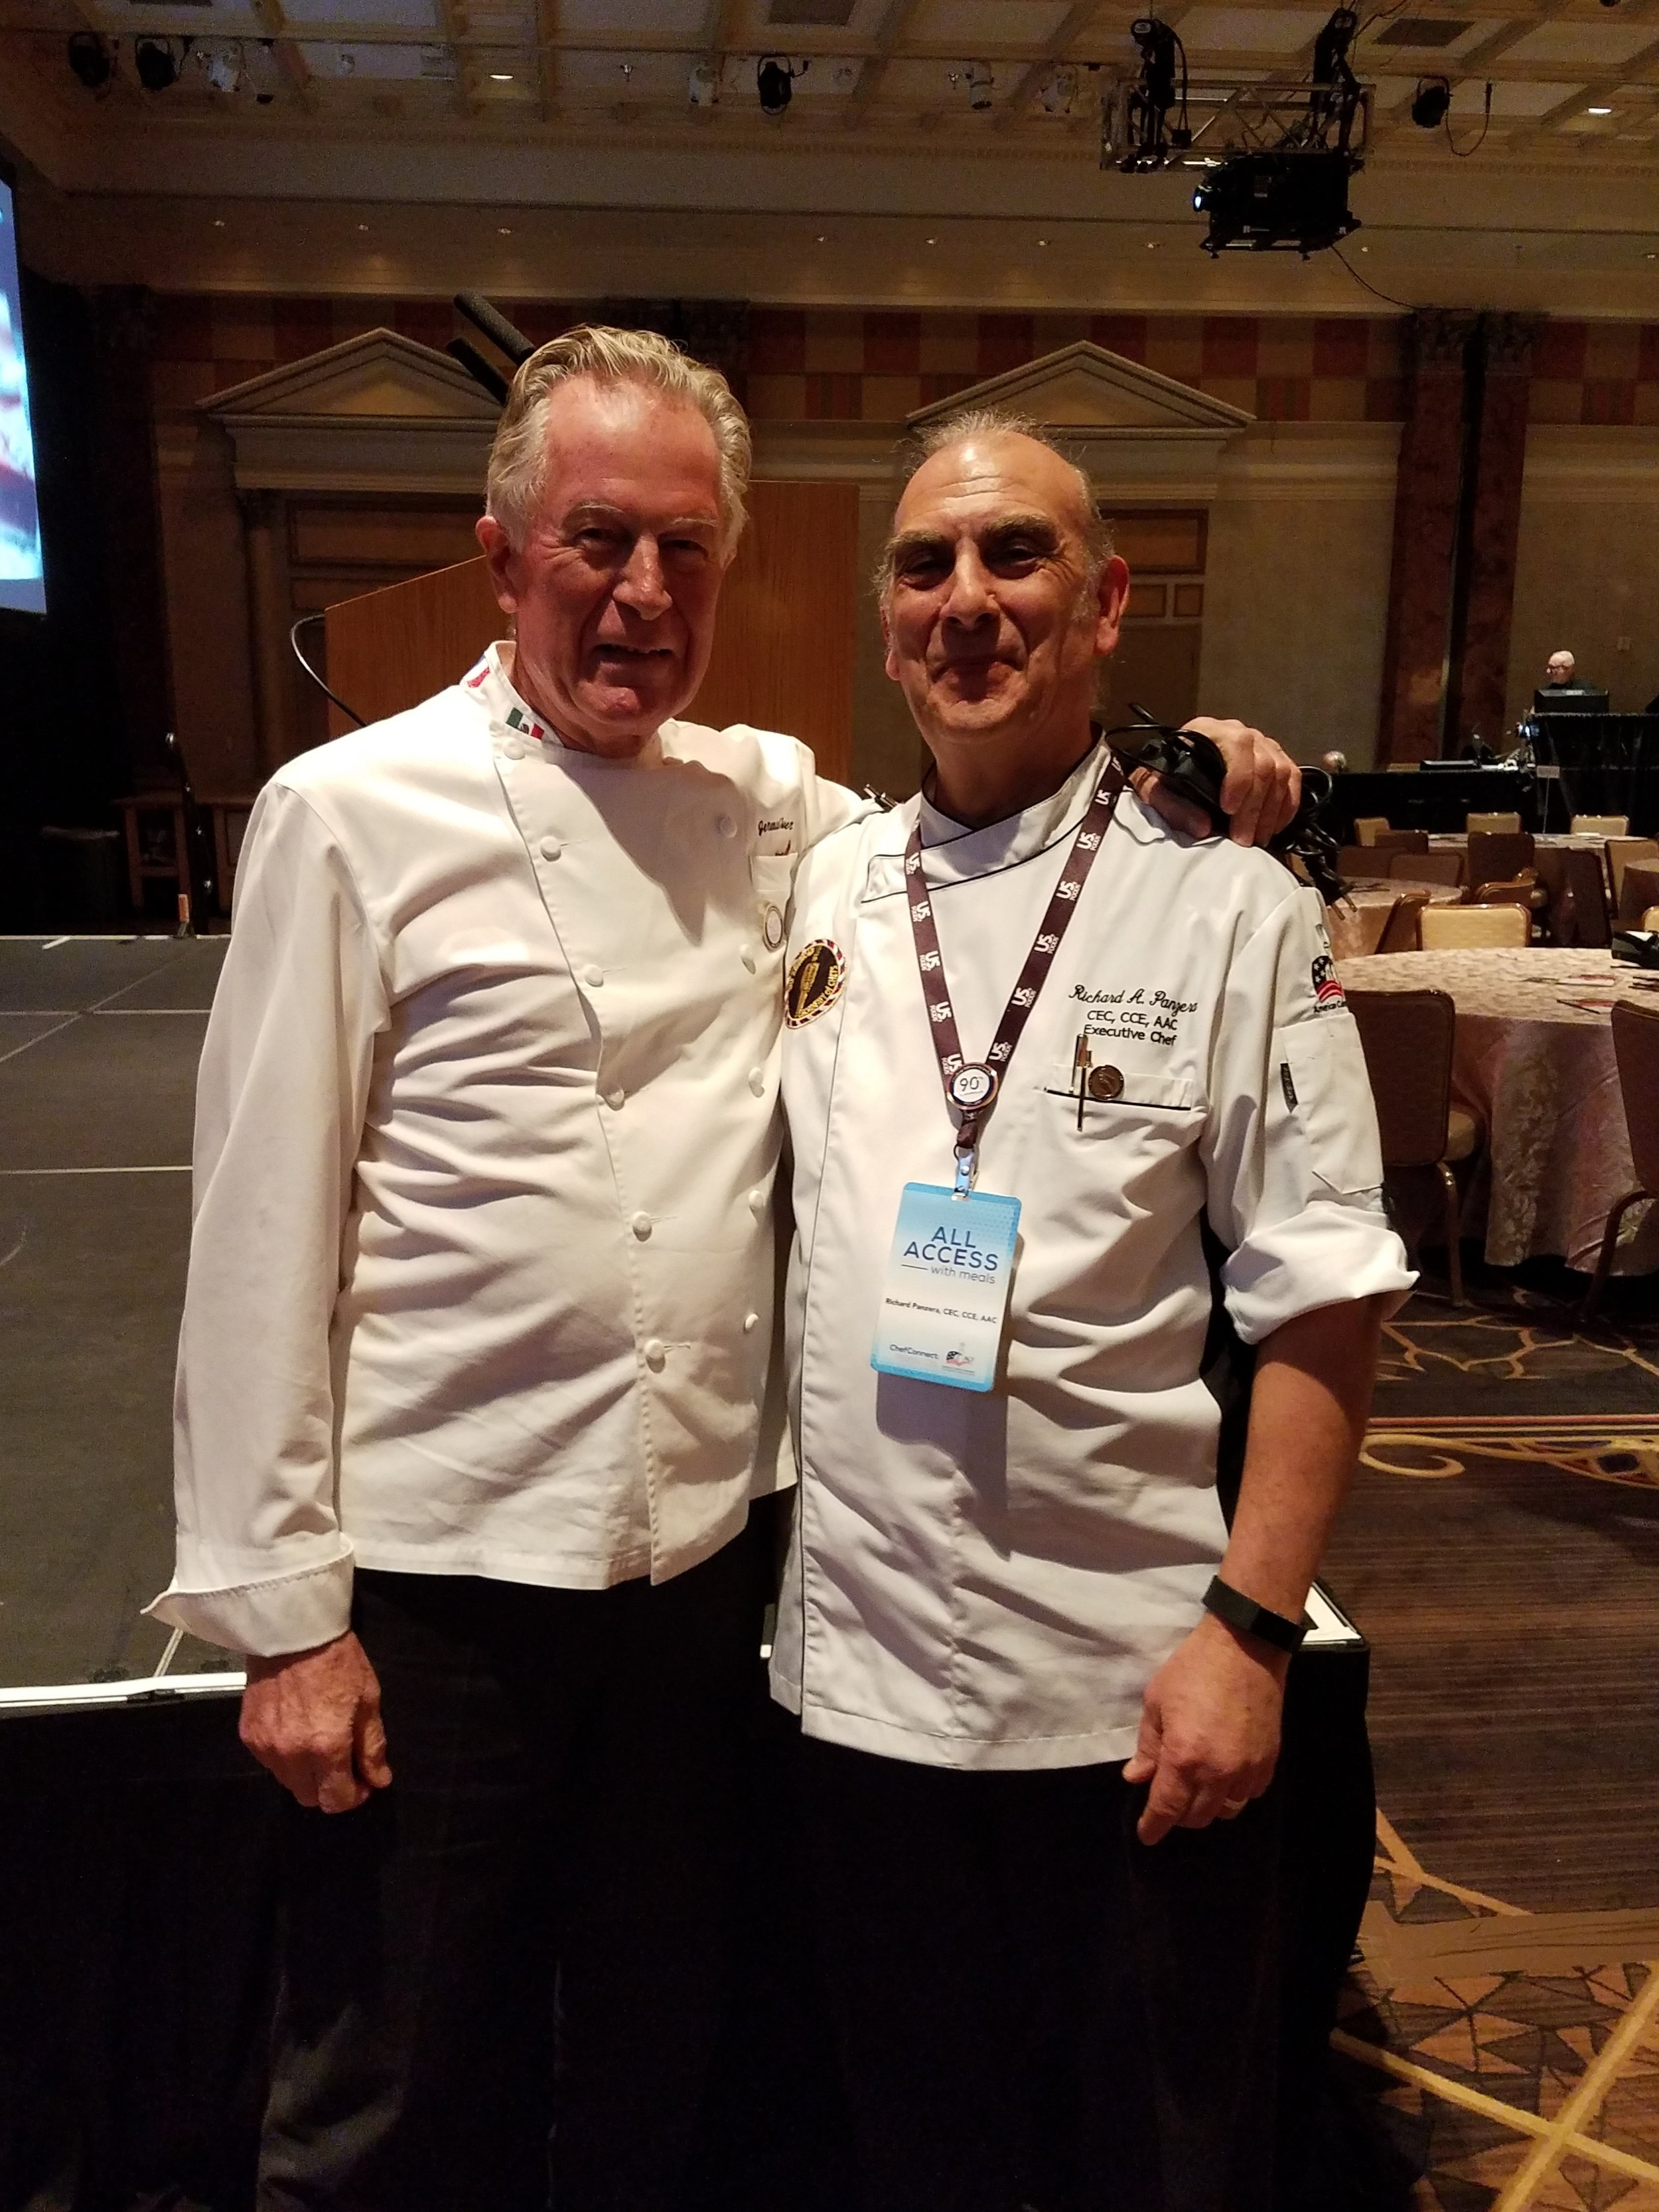 Chef Rikk Panzera with Jeremiah Tower